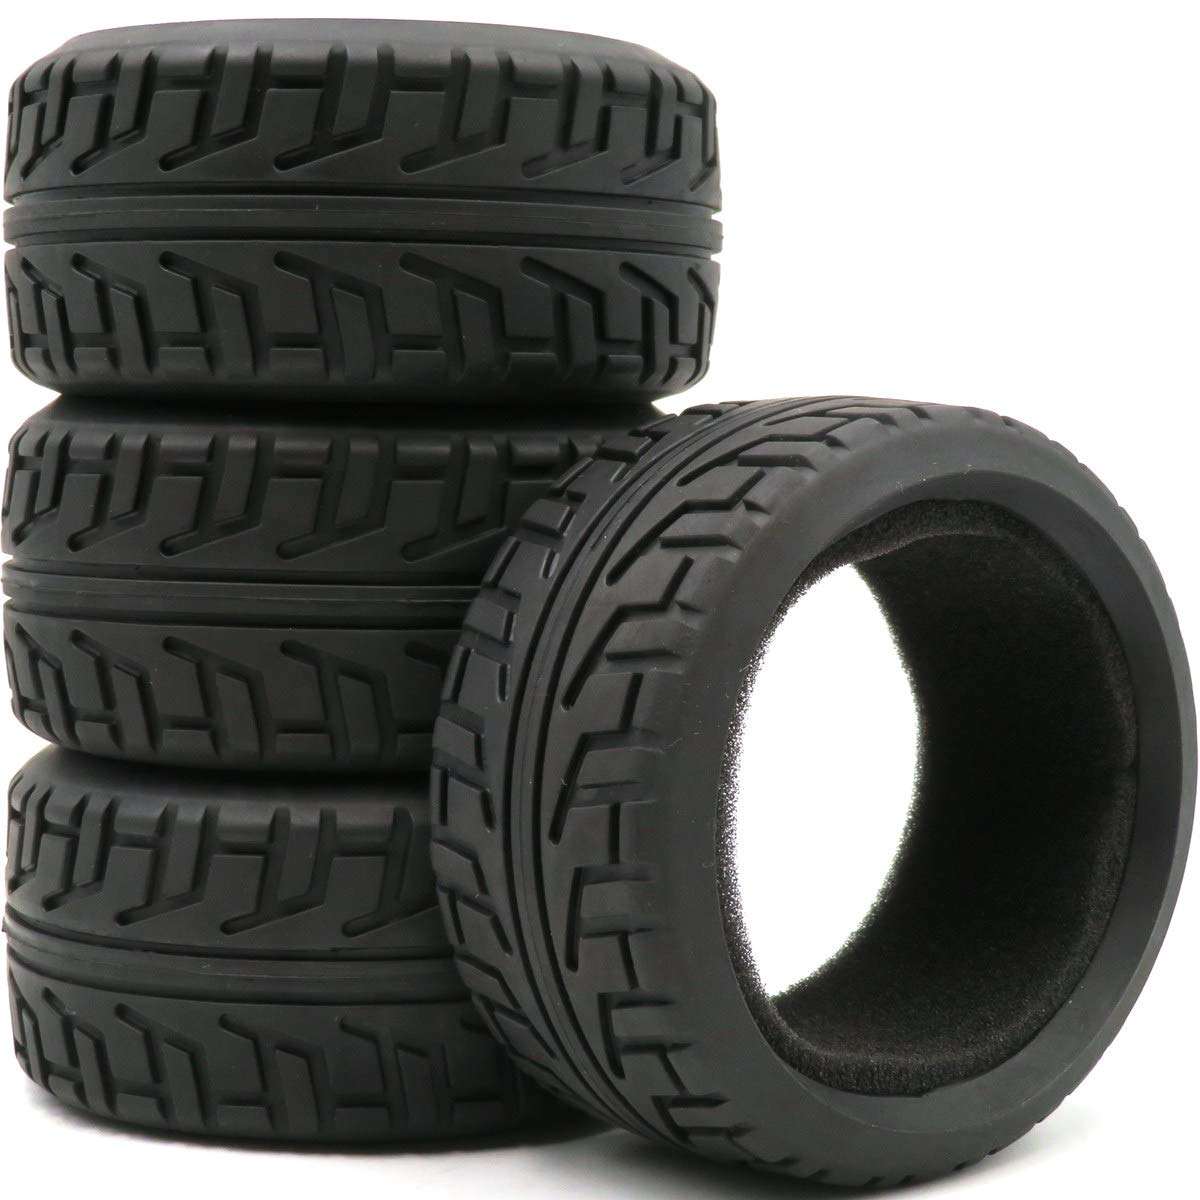 Apex RC Products 1//8 On-Road Black Twist Wheels /& Super Grip Tires Set Of 4 #6022